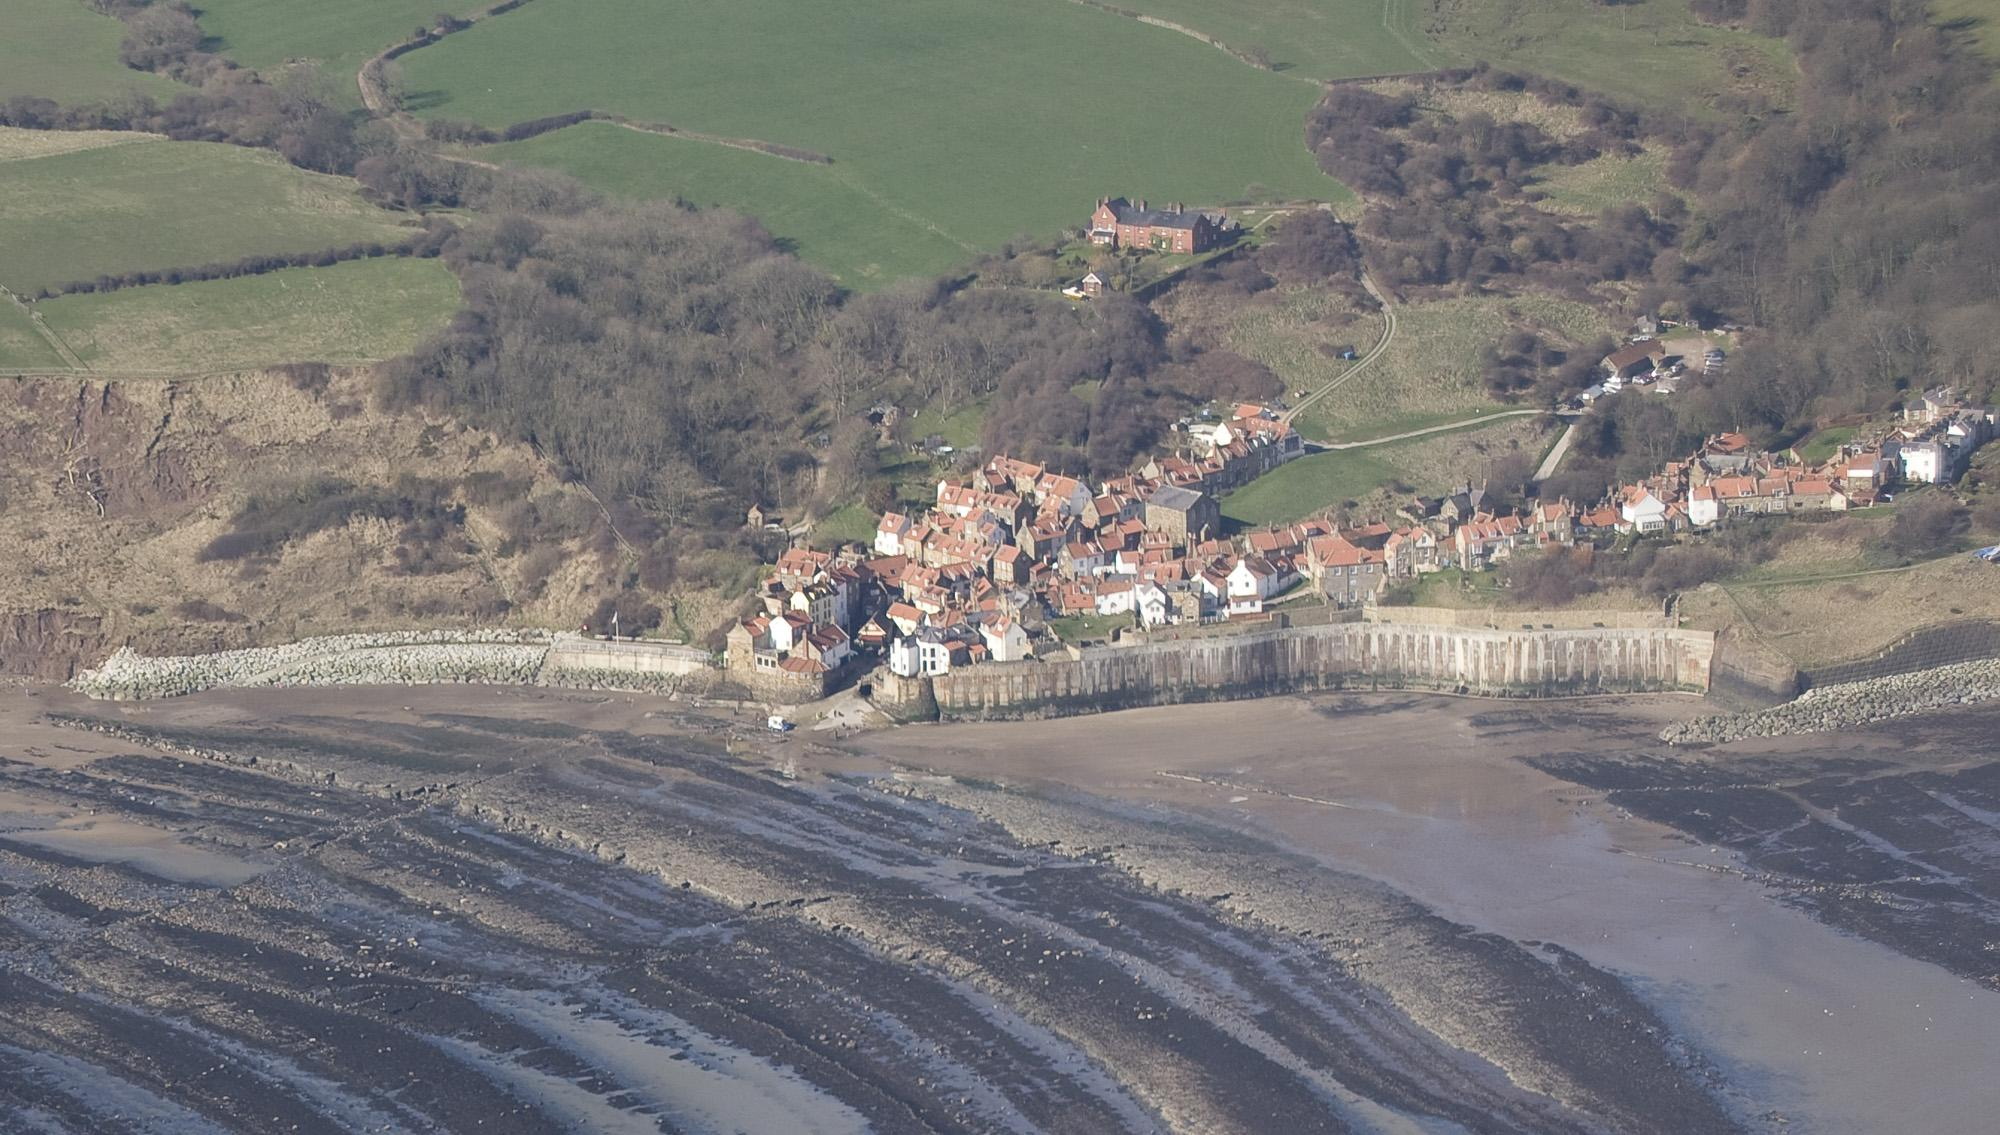 Aerial image of Robin Hood's Bay by North East Coastal Observatory